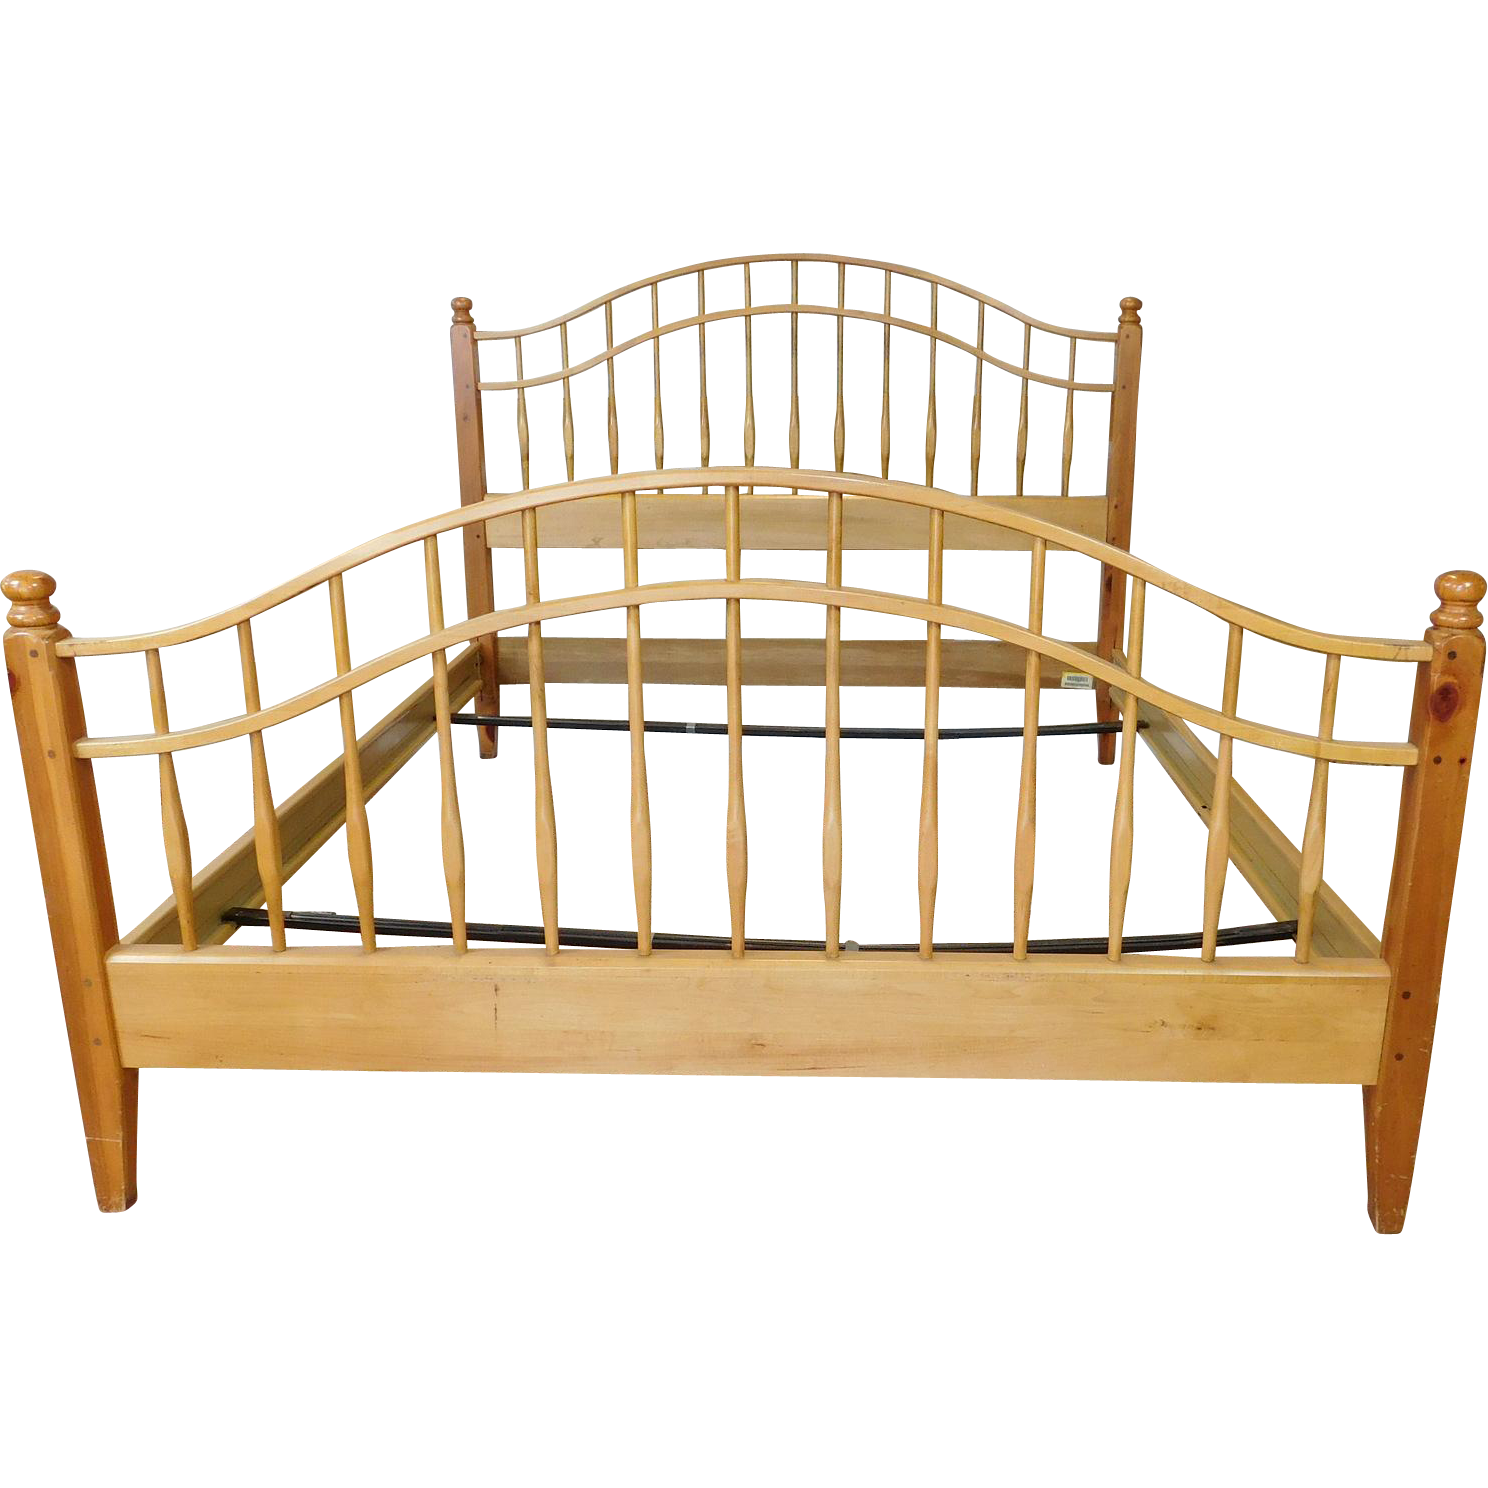 Ethan allen country craftsman knotty pine queen size for Country craftsman